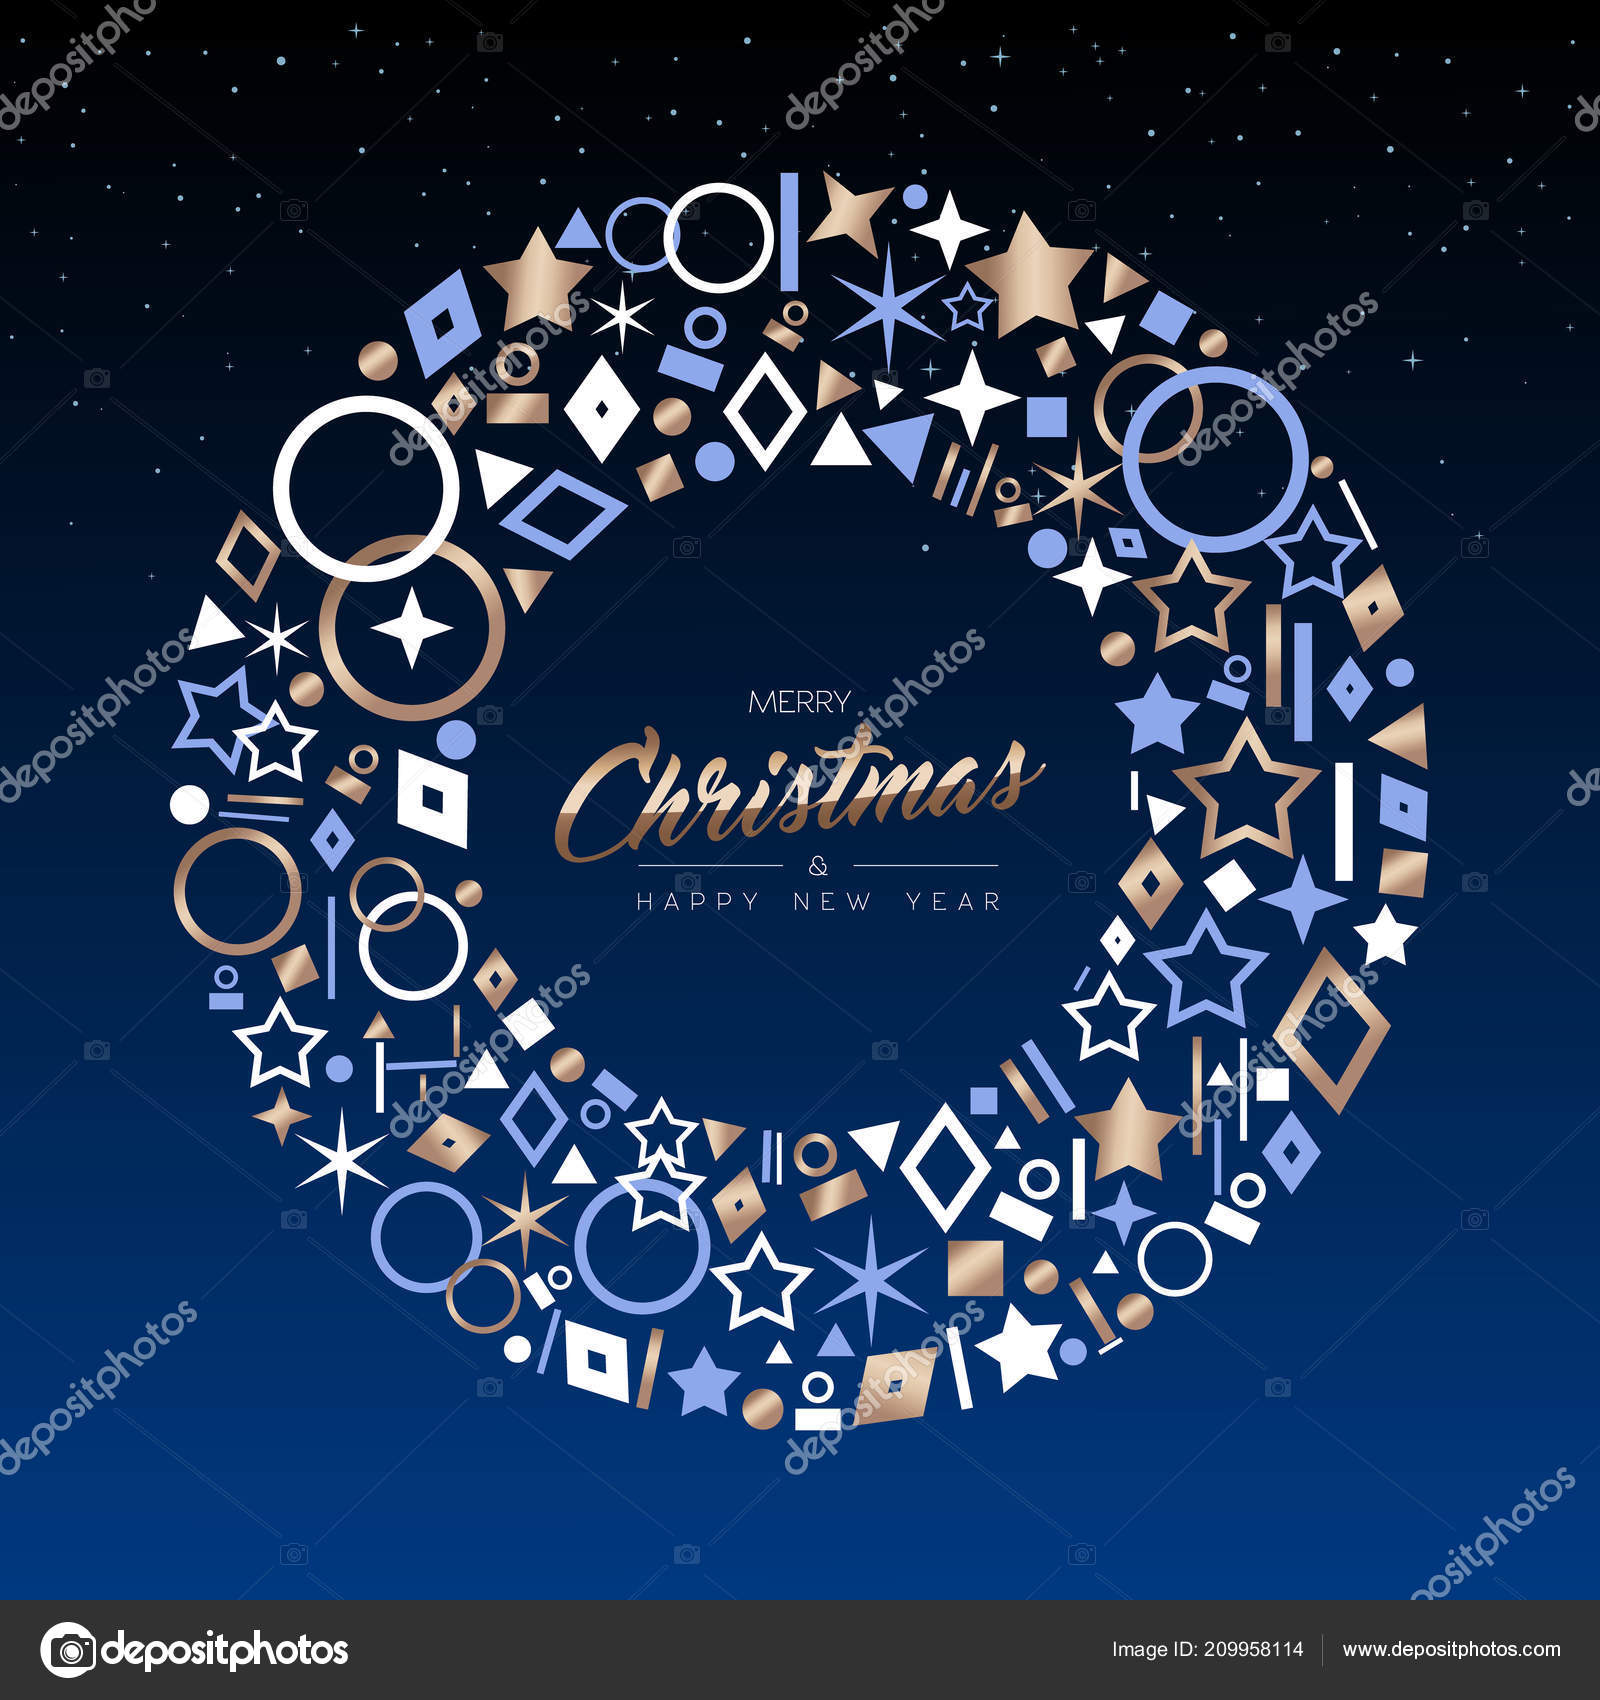 merry christmas happy new year greeting card design elegant copper stock vector